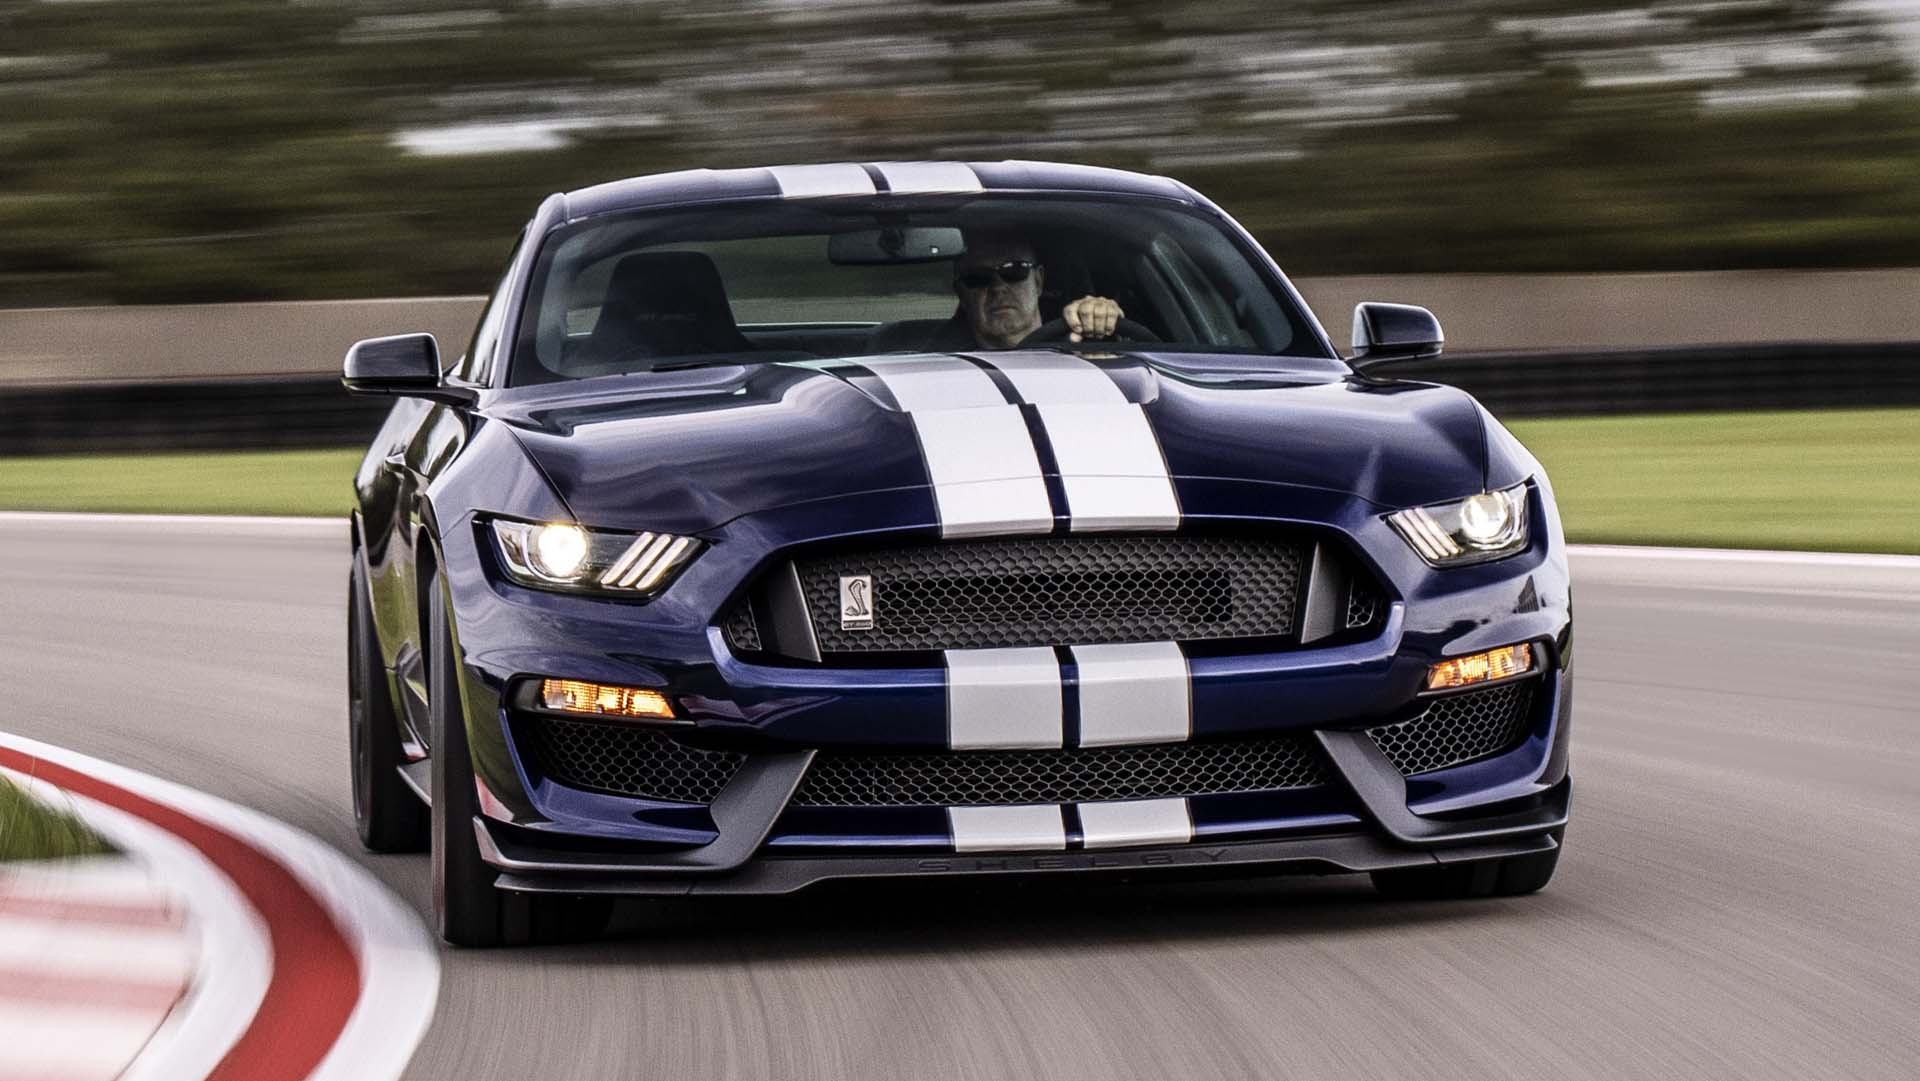 2019 ford mustang shelby gt350 thunders in with upgraded aero tires brakes